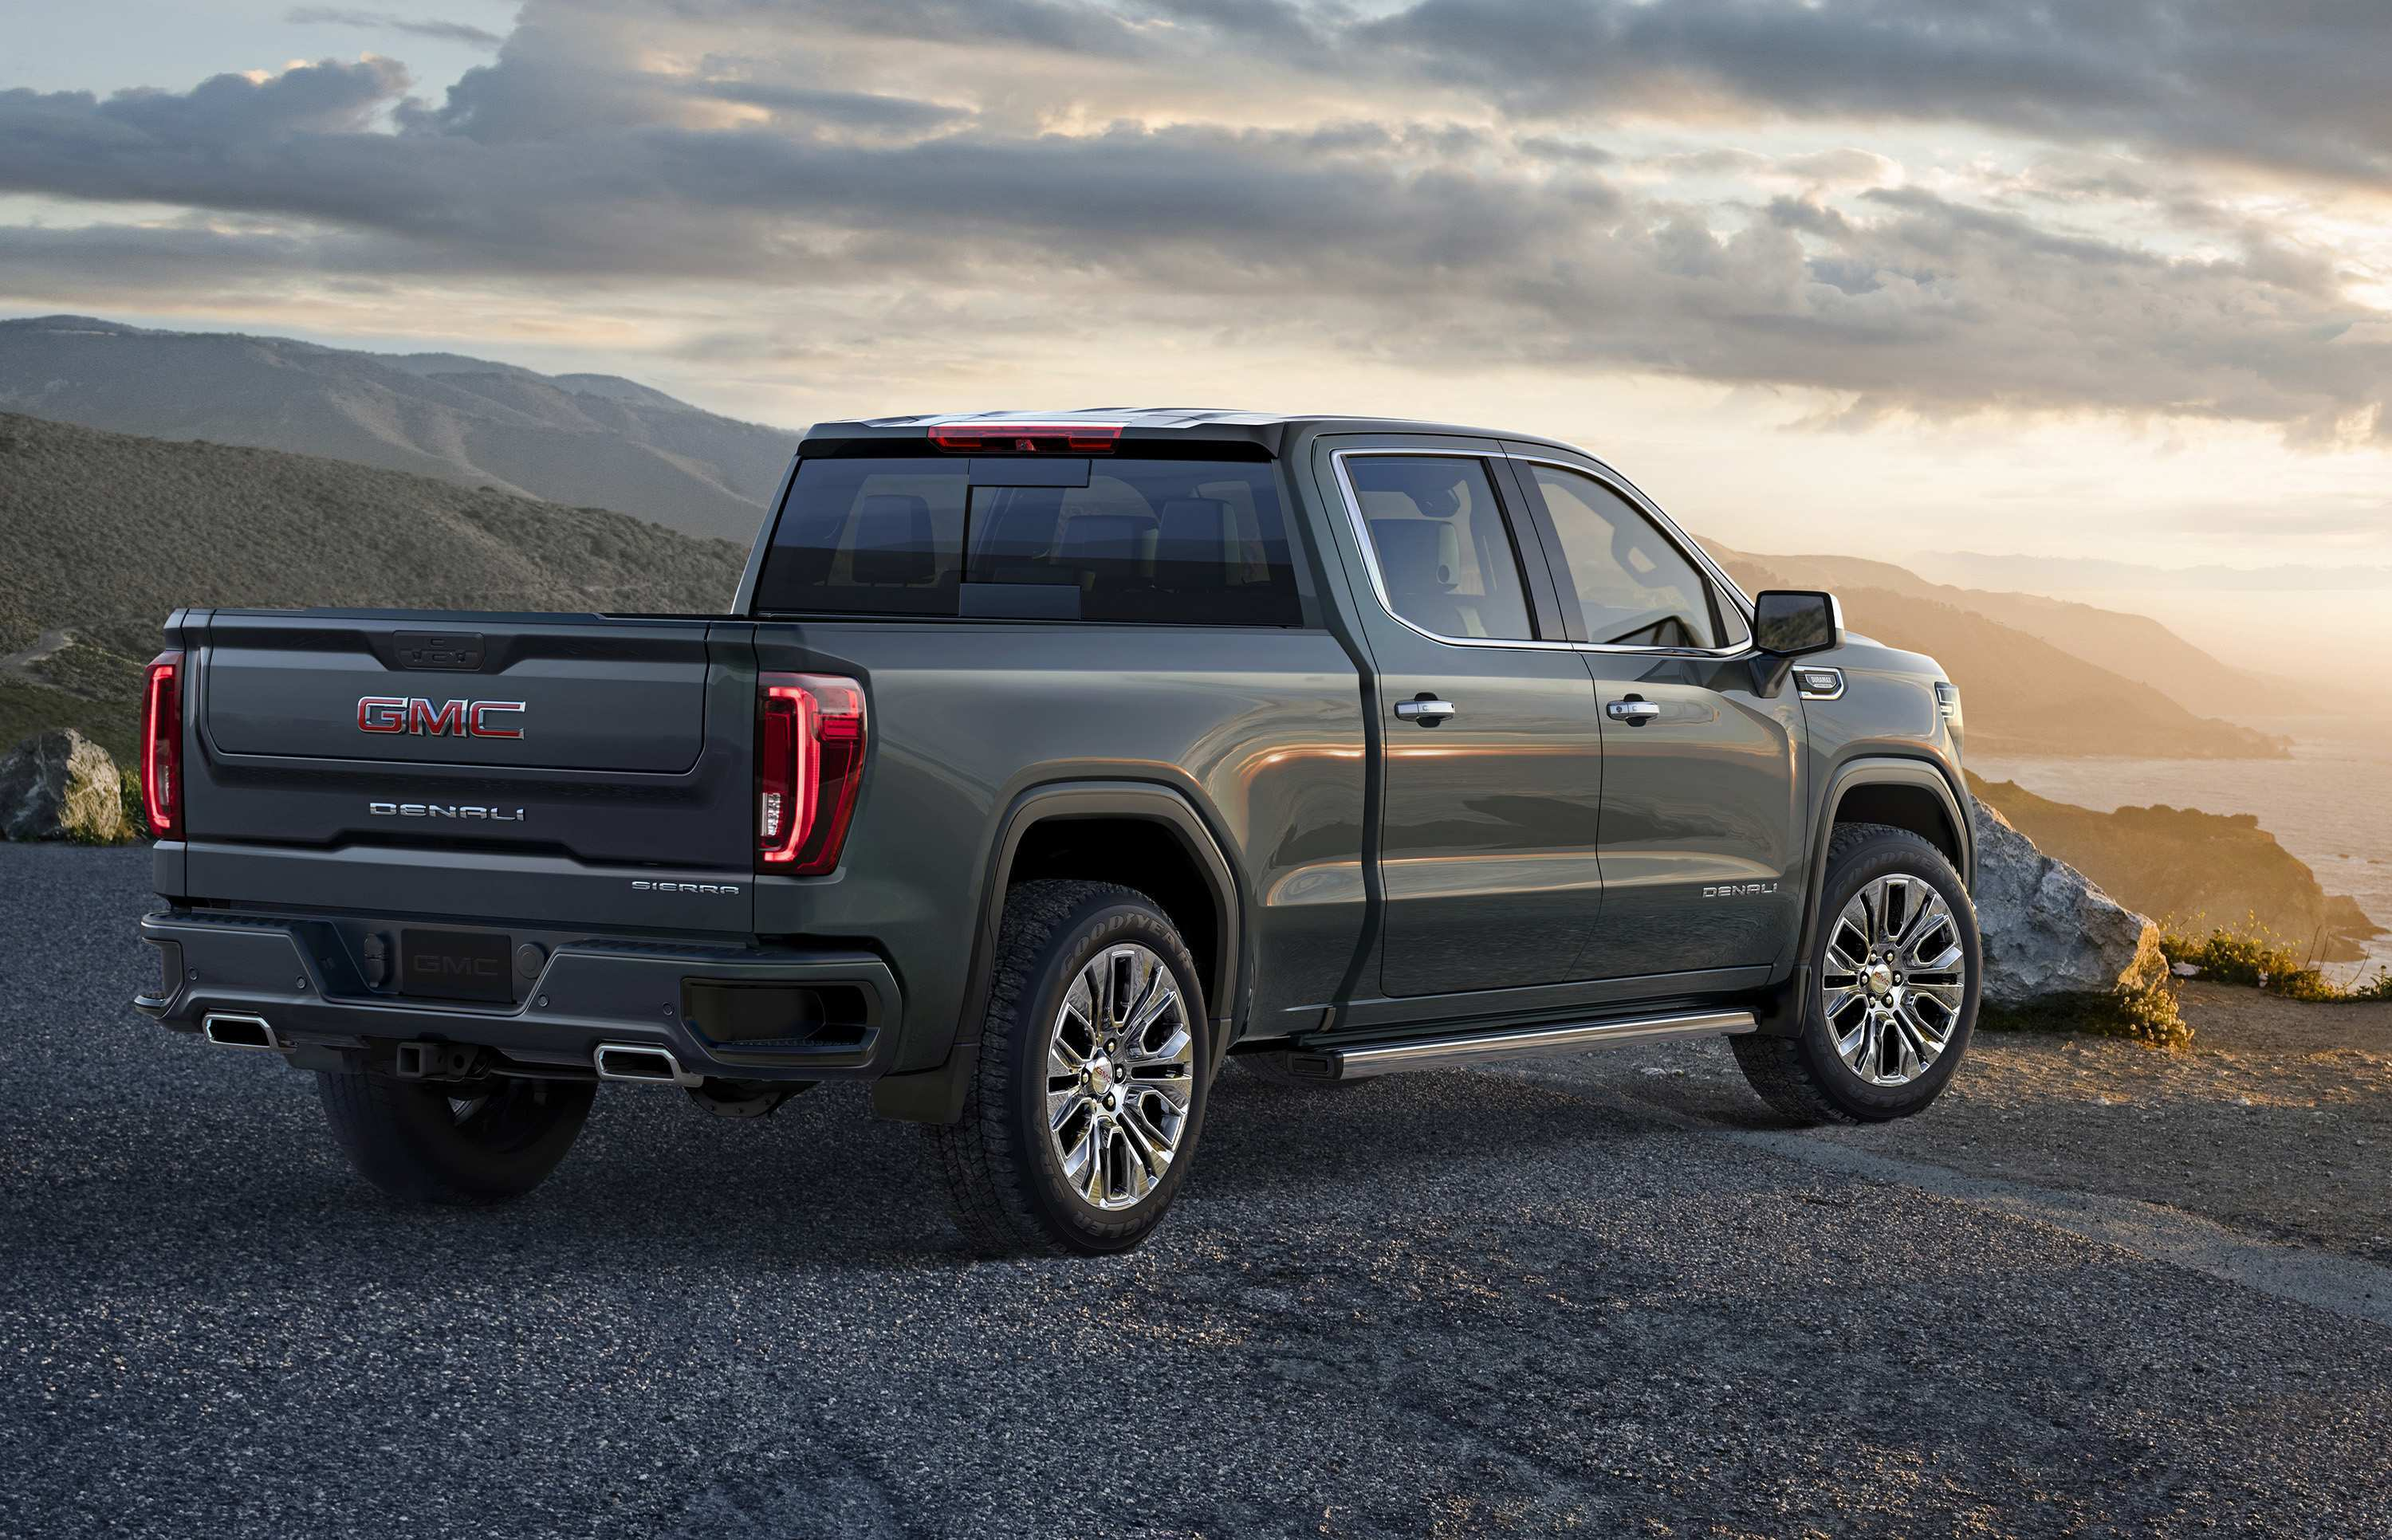 55 A 2019 GMC Sierra 1500 Diesel Exterior And Interior